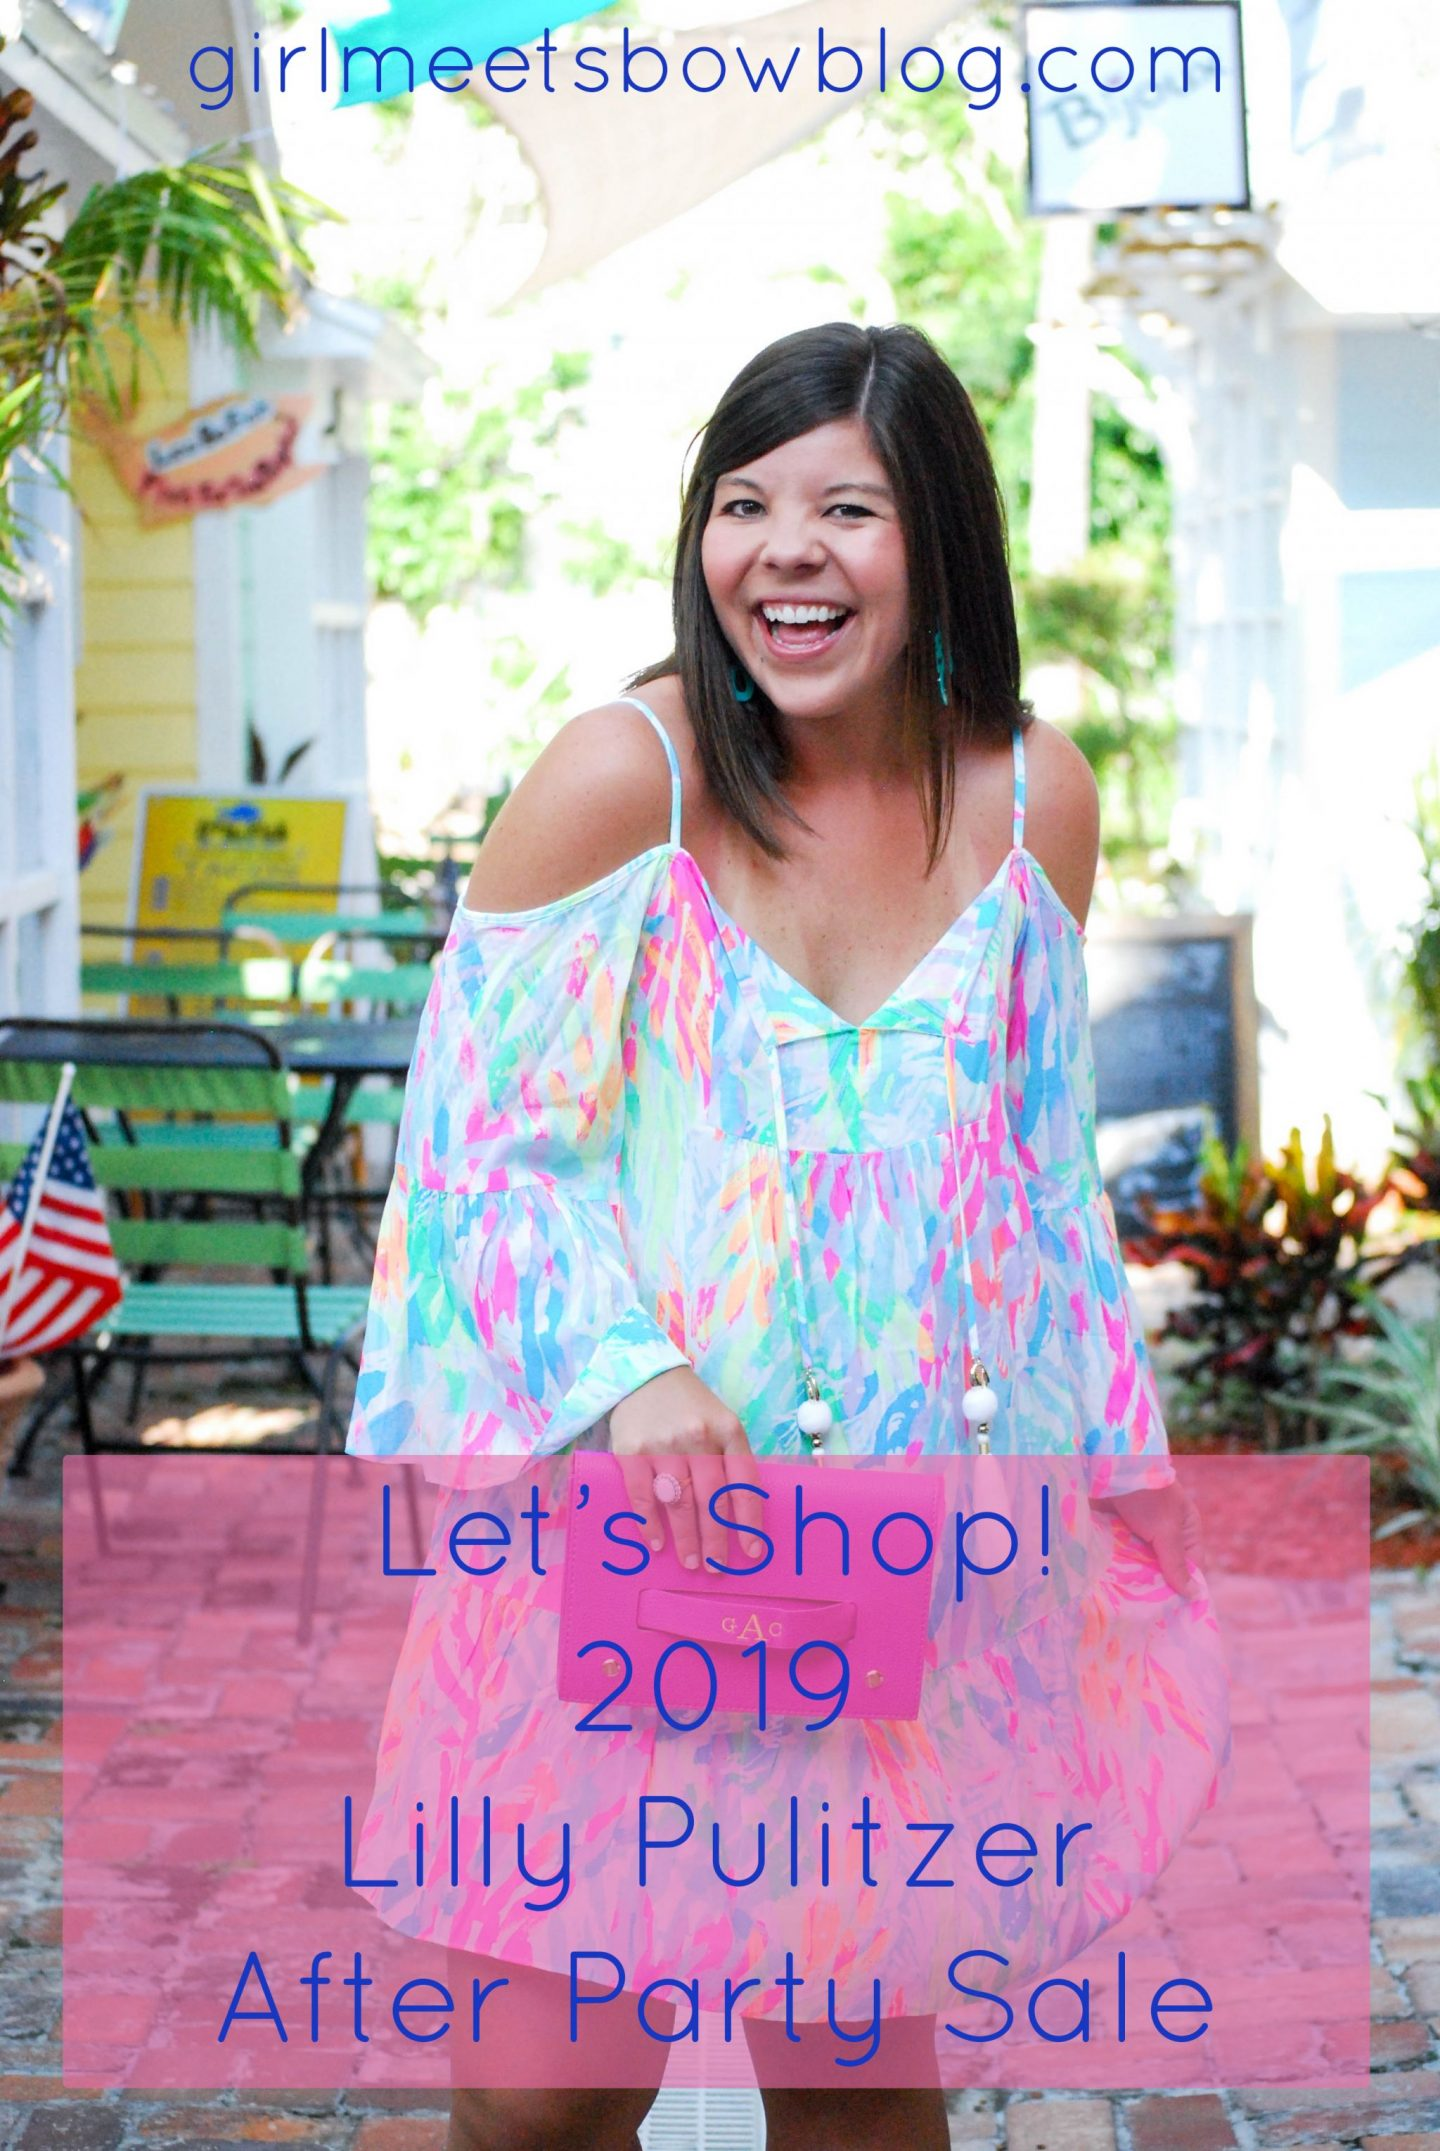 Let's Shop: January 2019 Lilly Pulitzer After Party Sale!